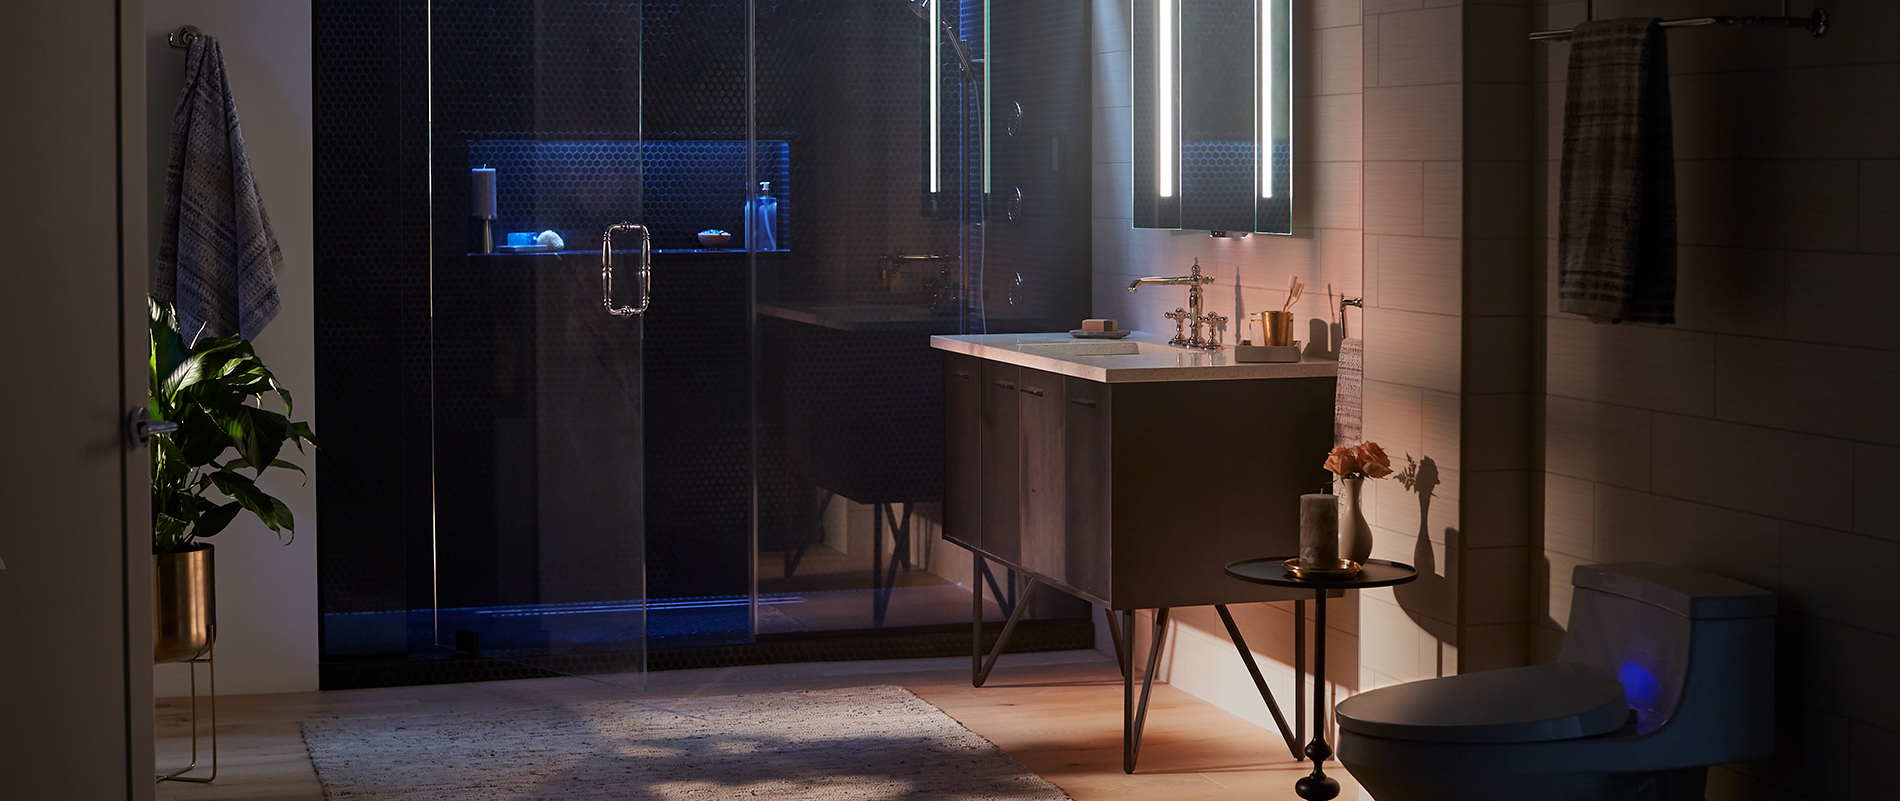 Kohler Introduces Smart Home Kitchen And Bathroom Products